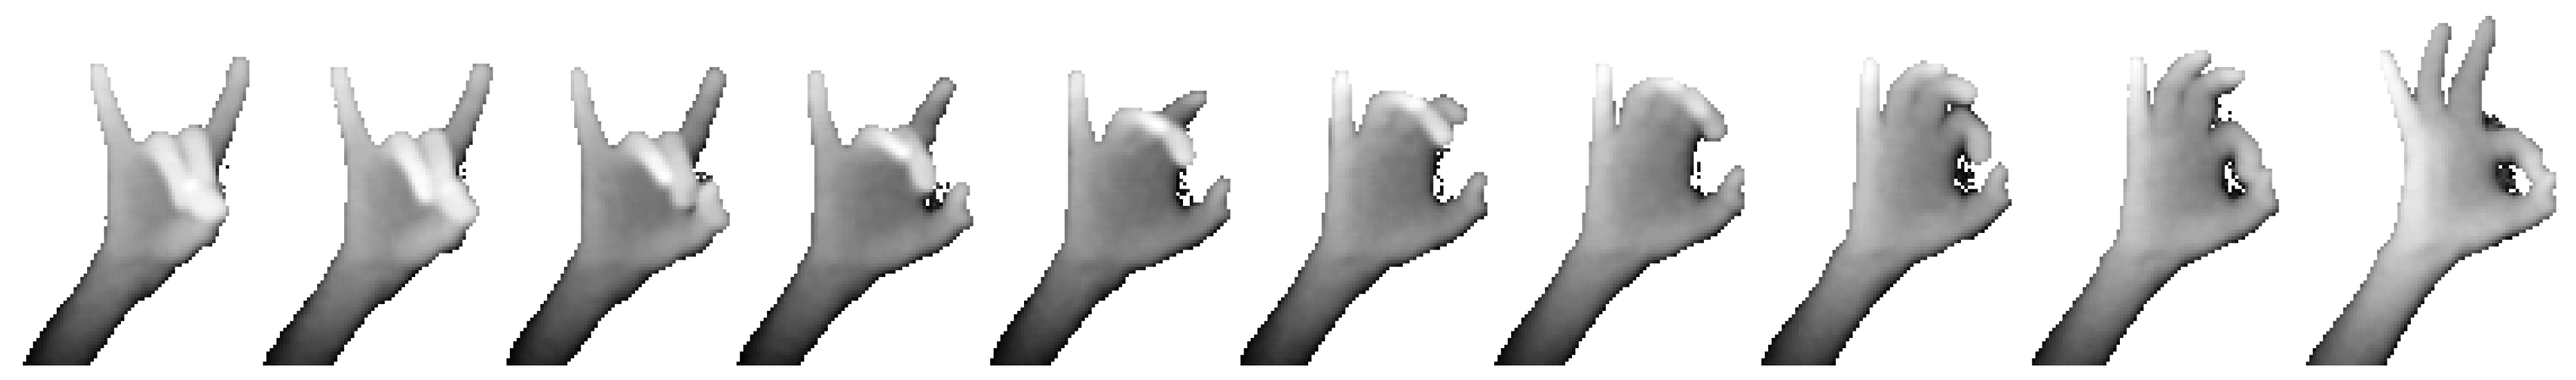 Sensors | Free Full-Text | Recognition of Fingerspelling Sequences